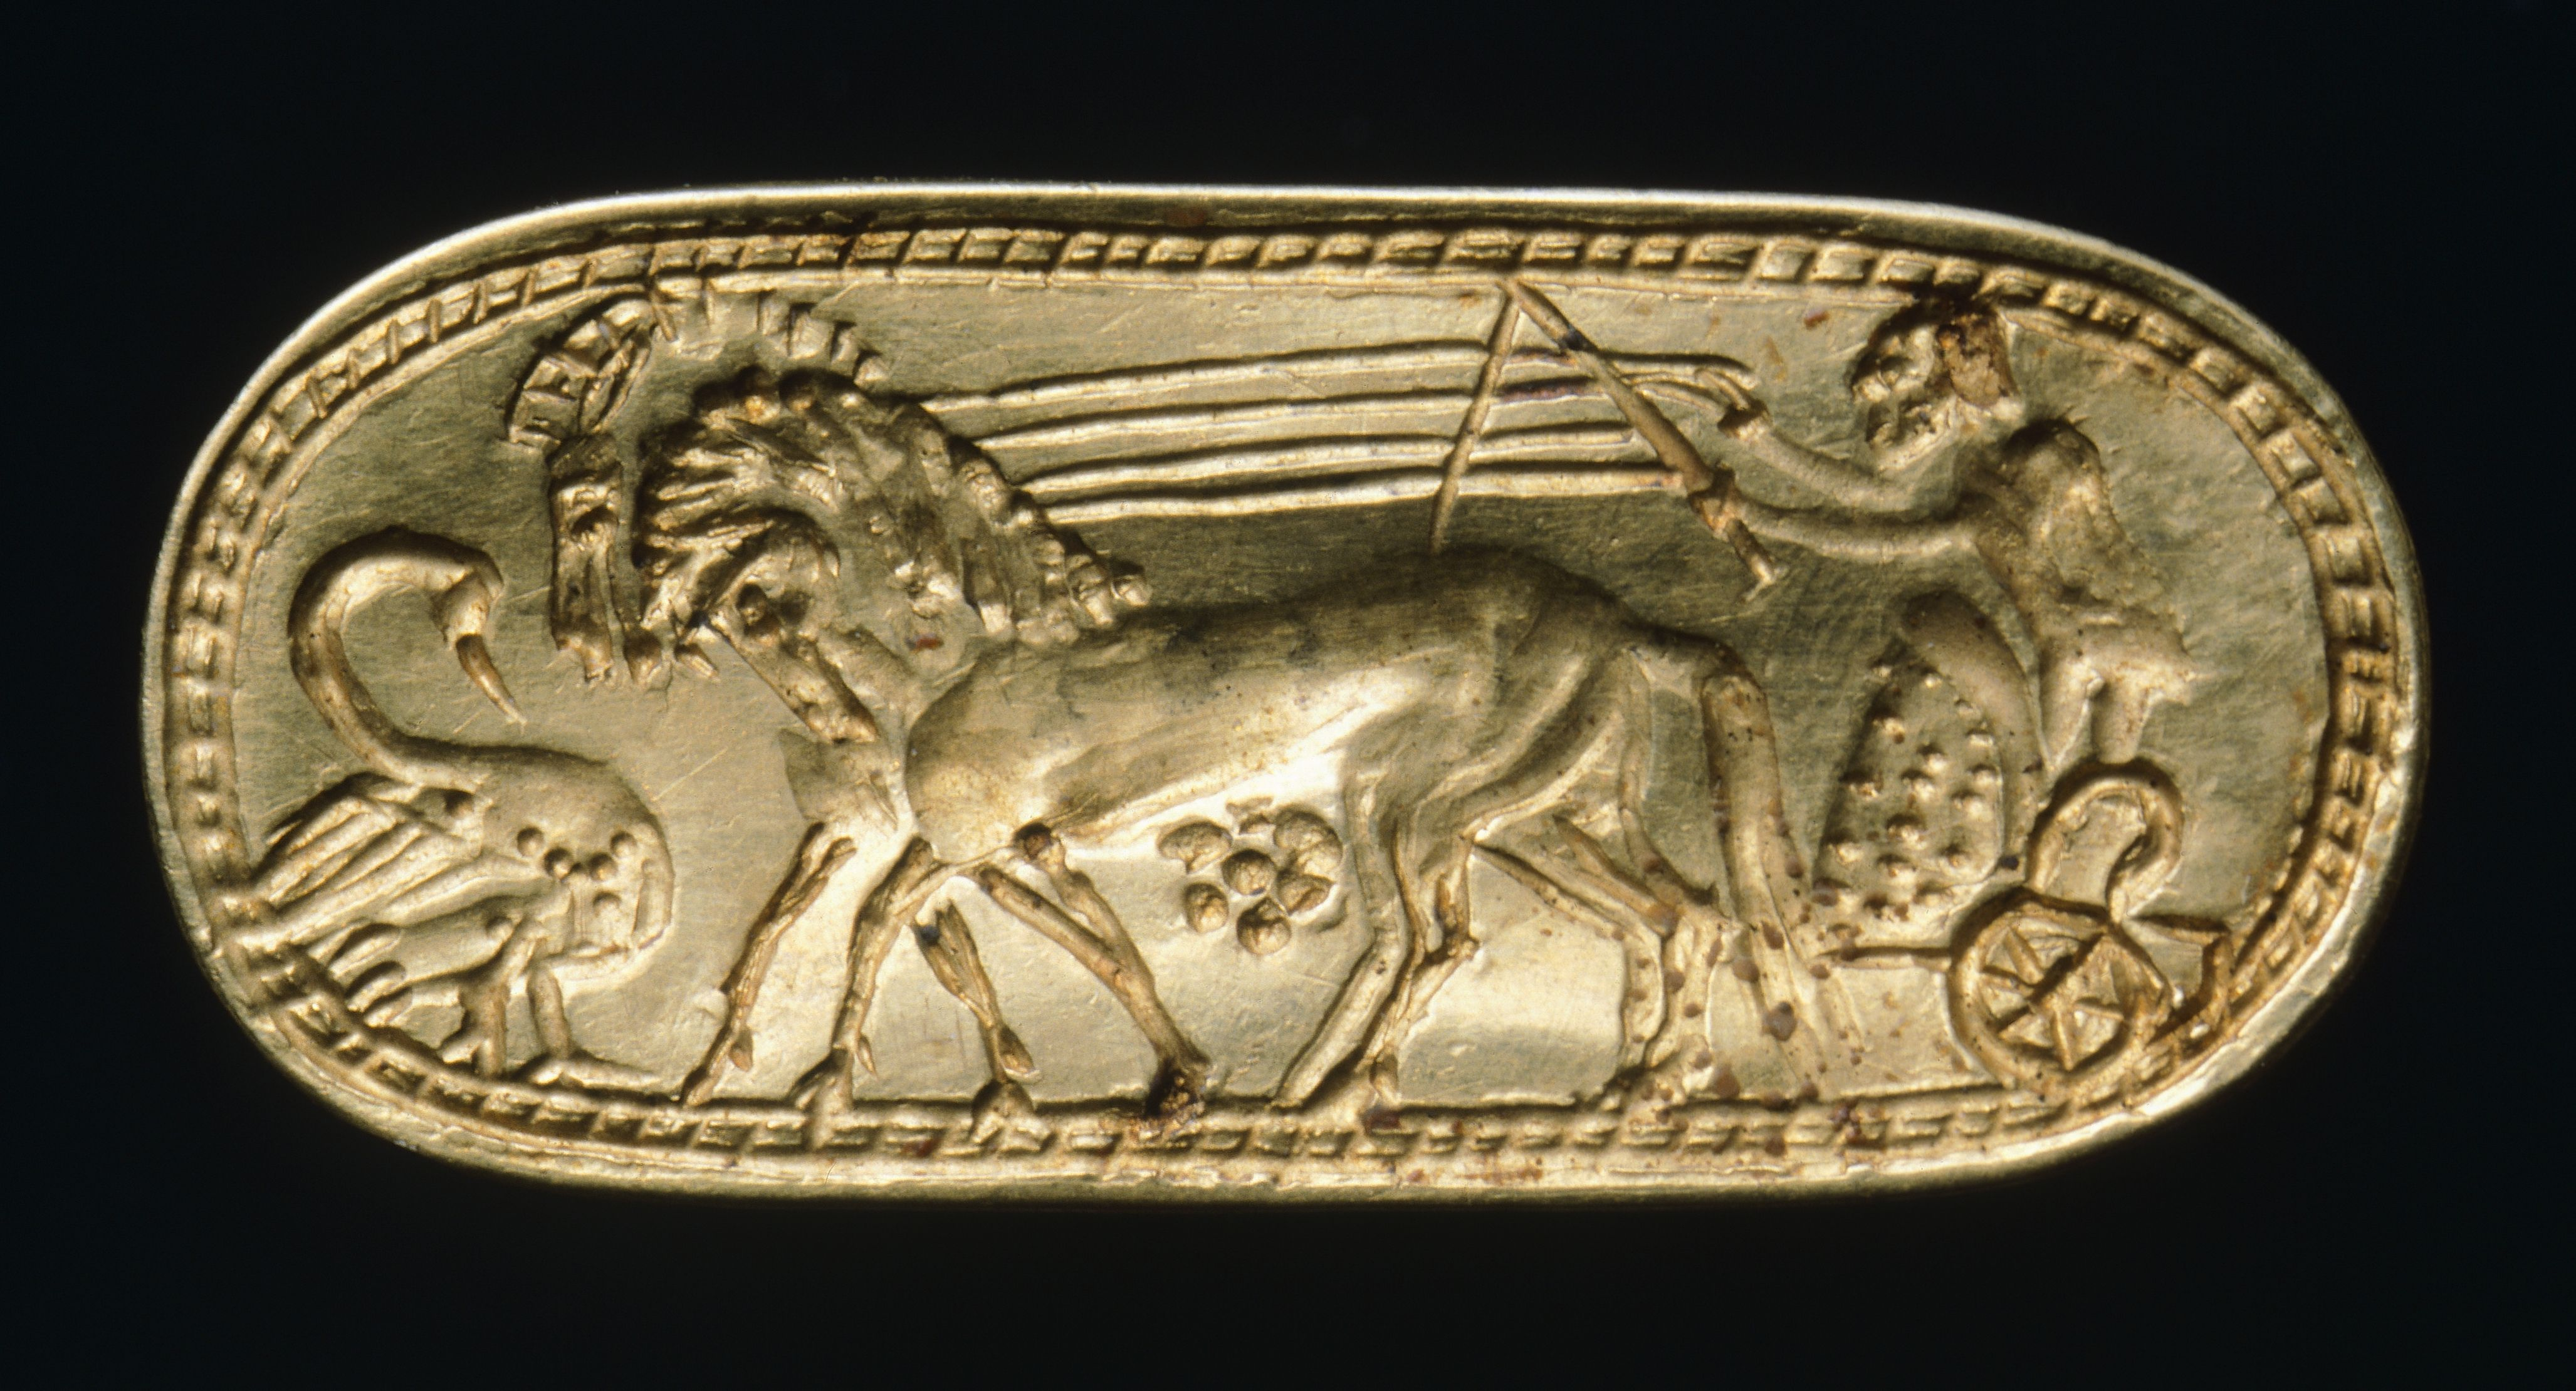 Gold ring. Etruscan civilization, 6th Century BC.